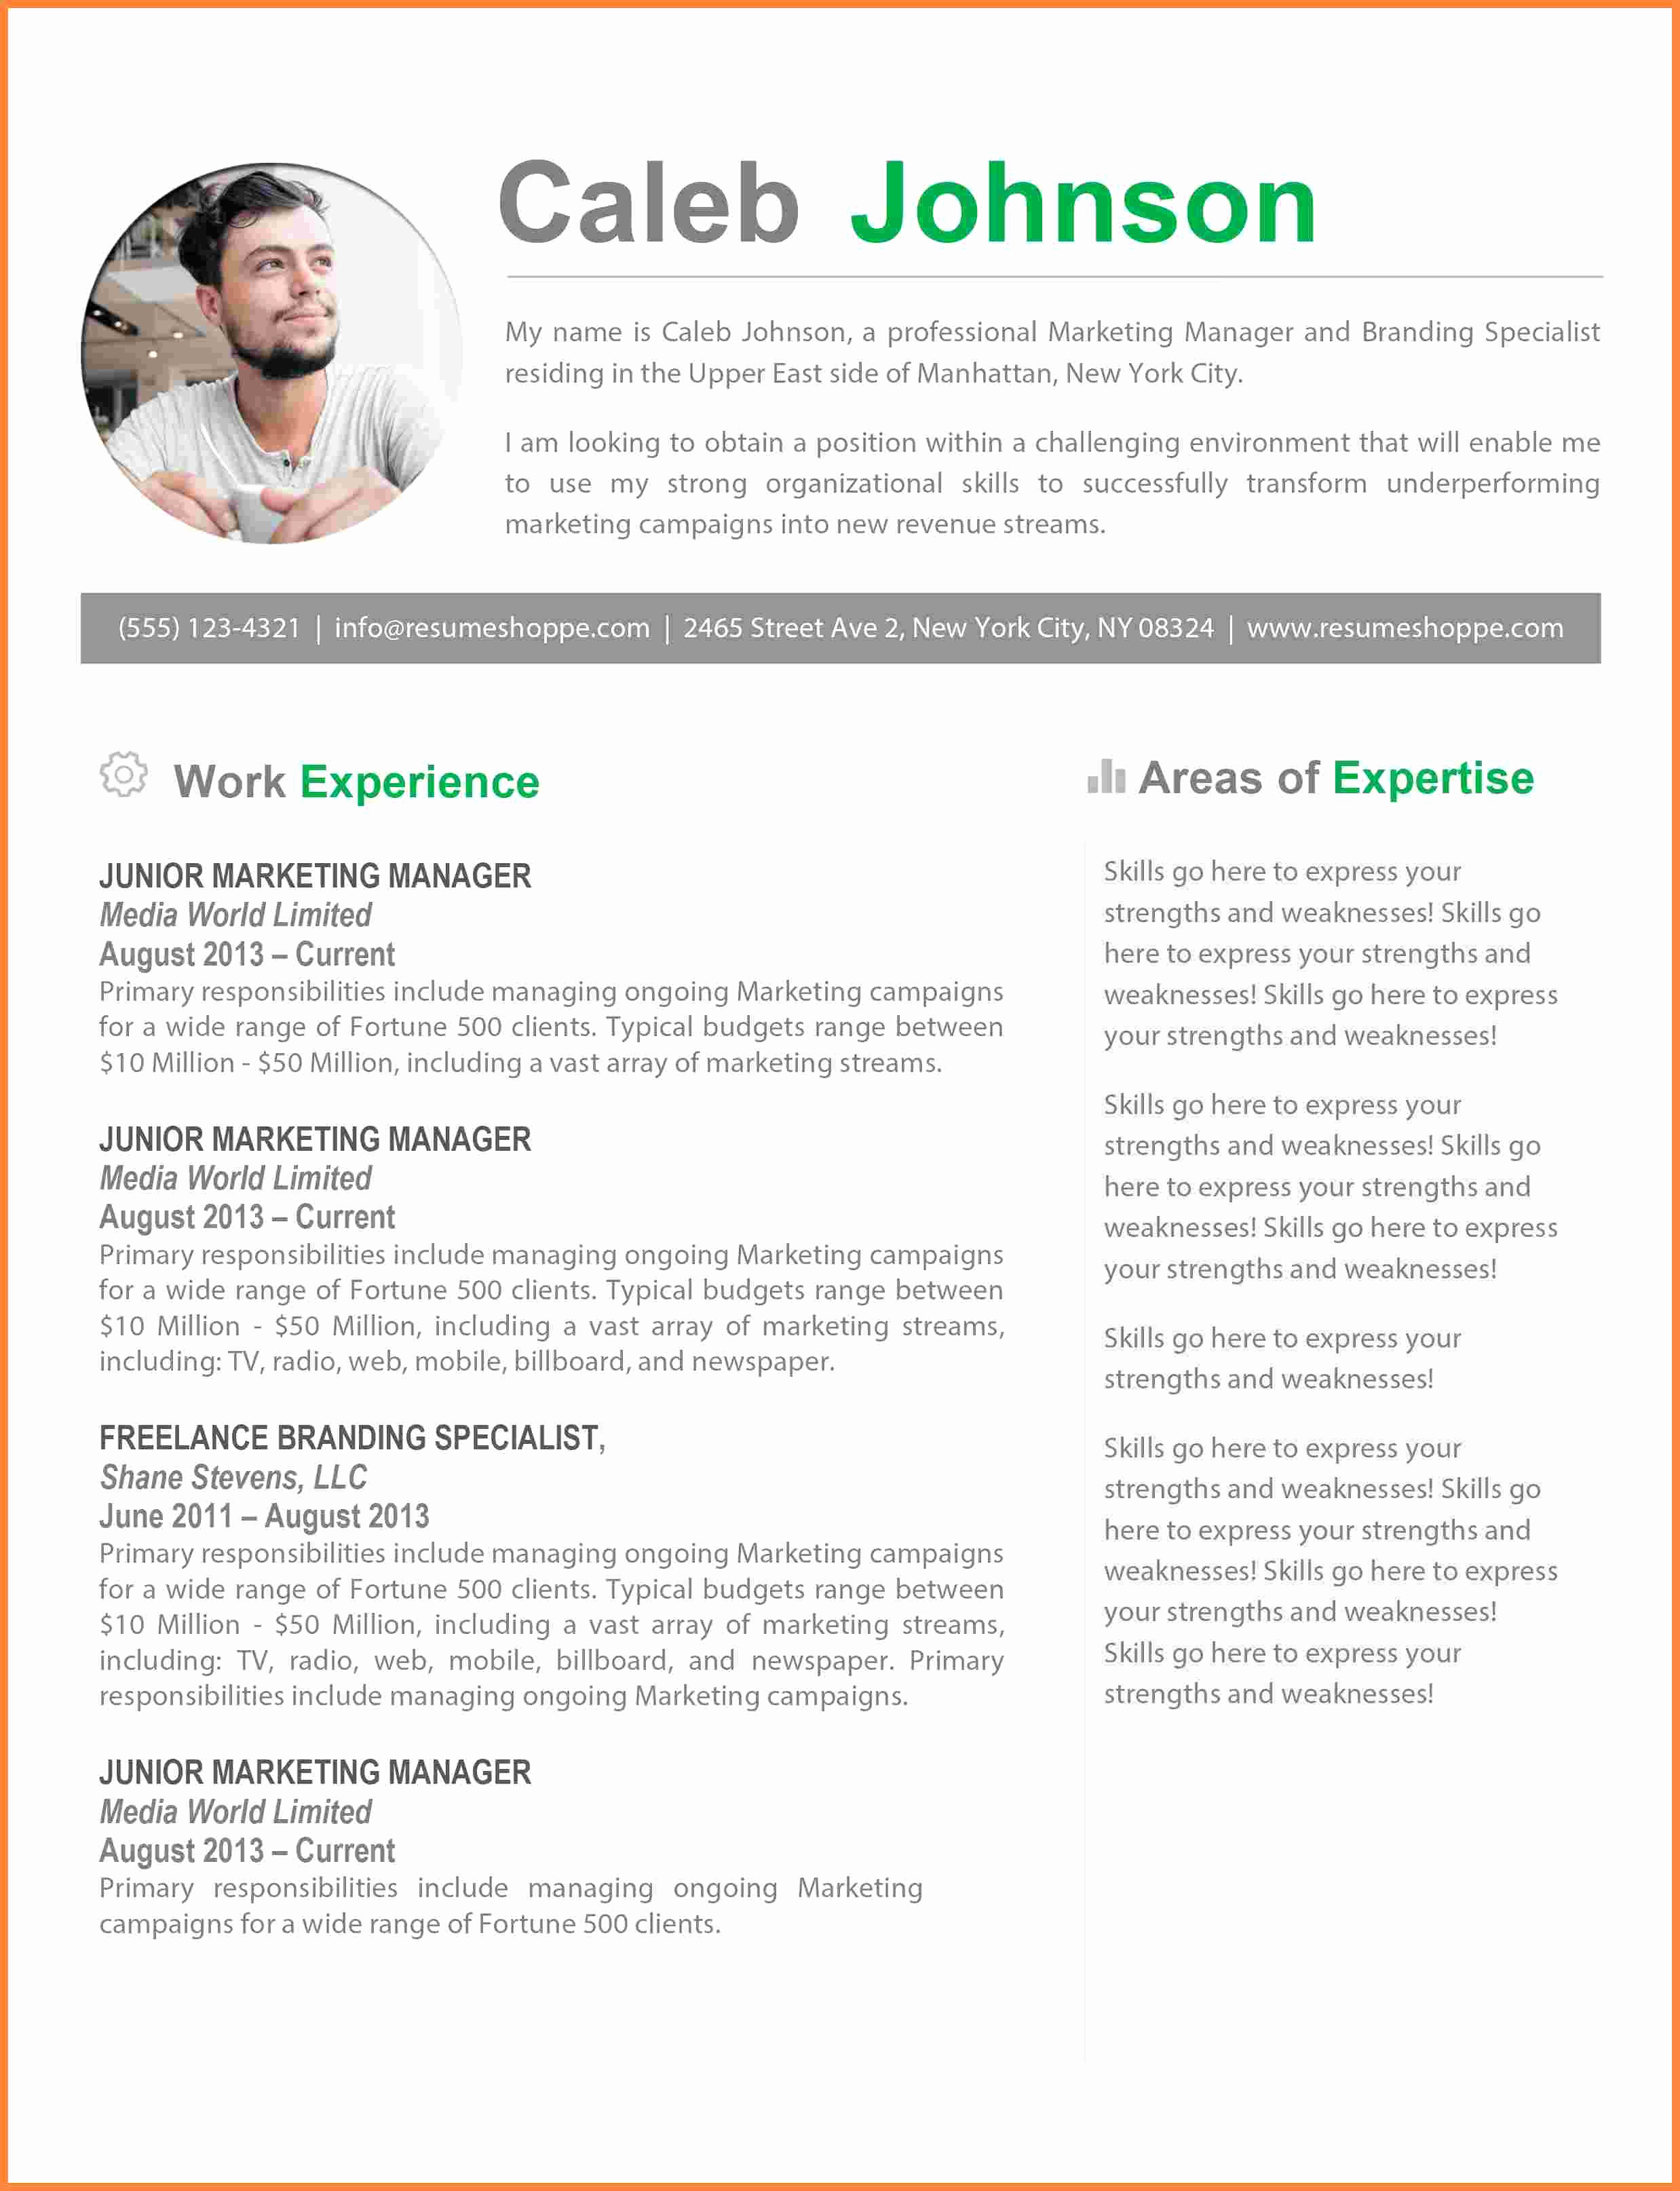 Free Resume Templates for Mac Inspirational 8 Resume Templates for Mac Pages Free